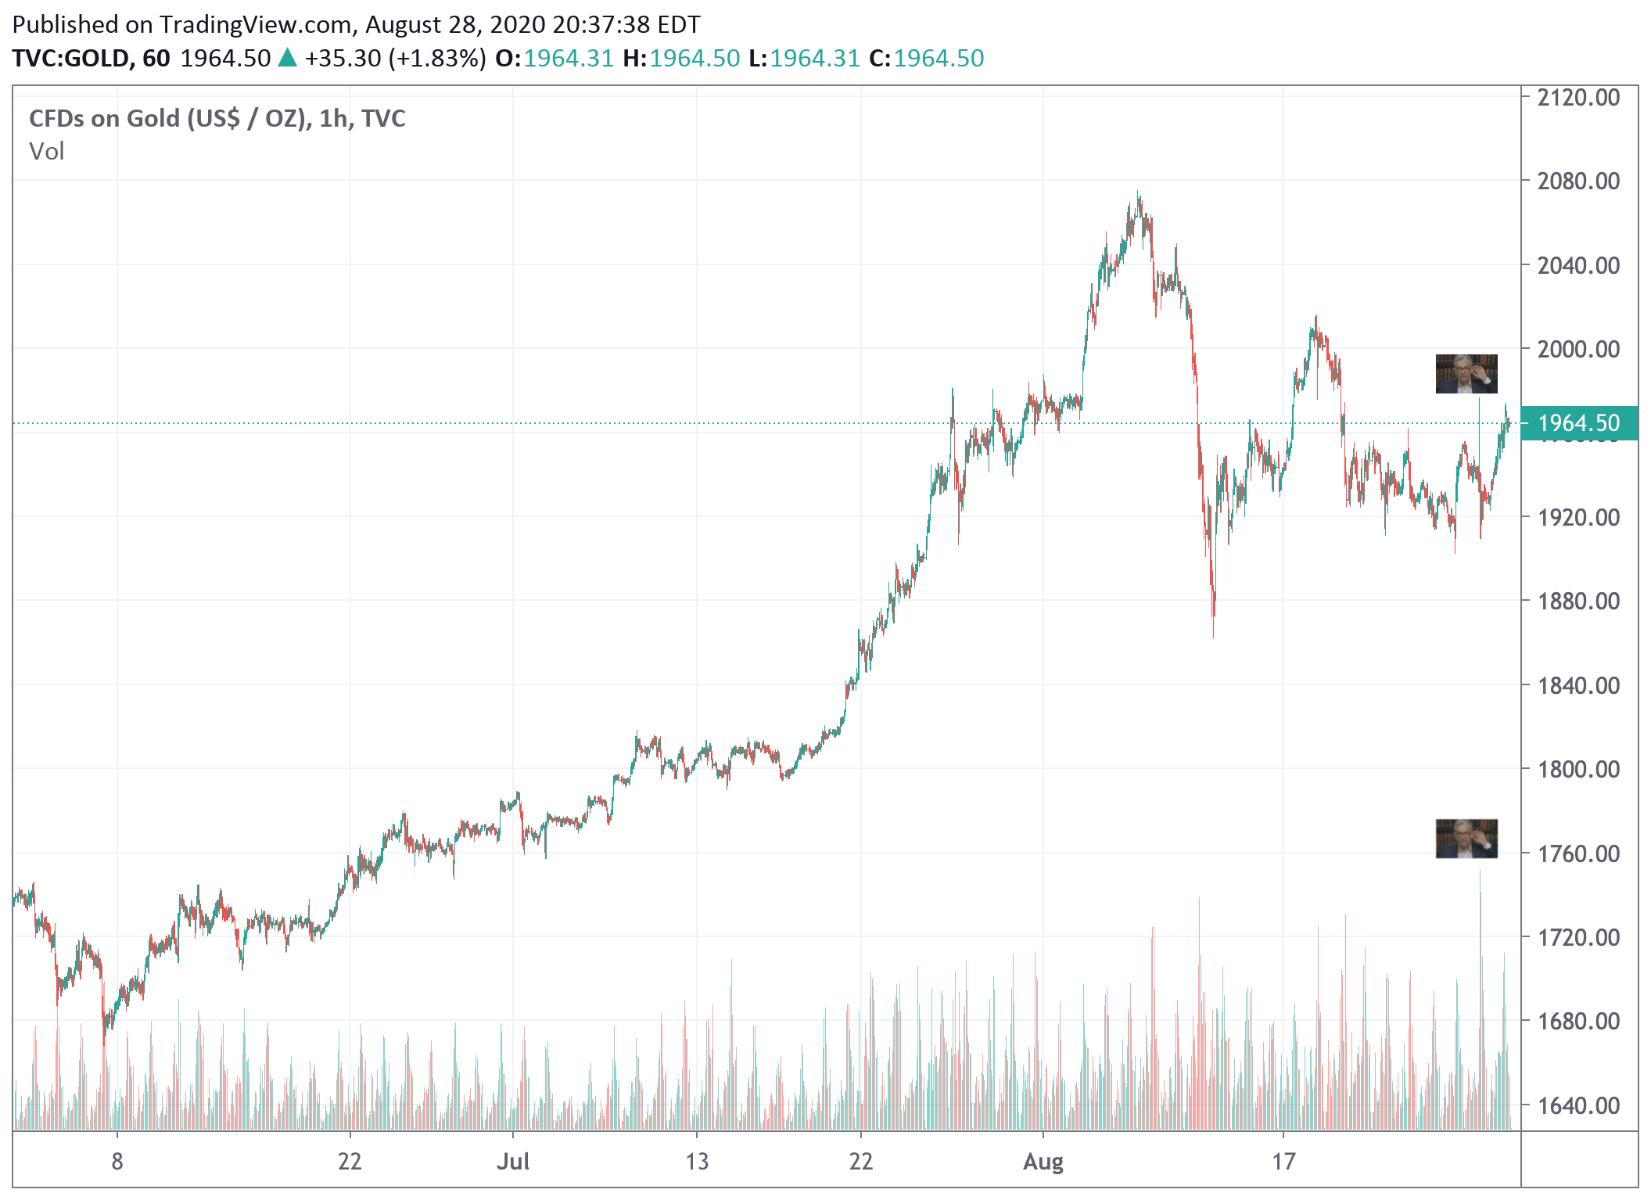 Gold price intervention 2020 Jackson Hole Powell Inflation Speech 5 day